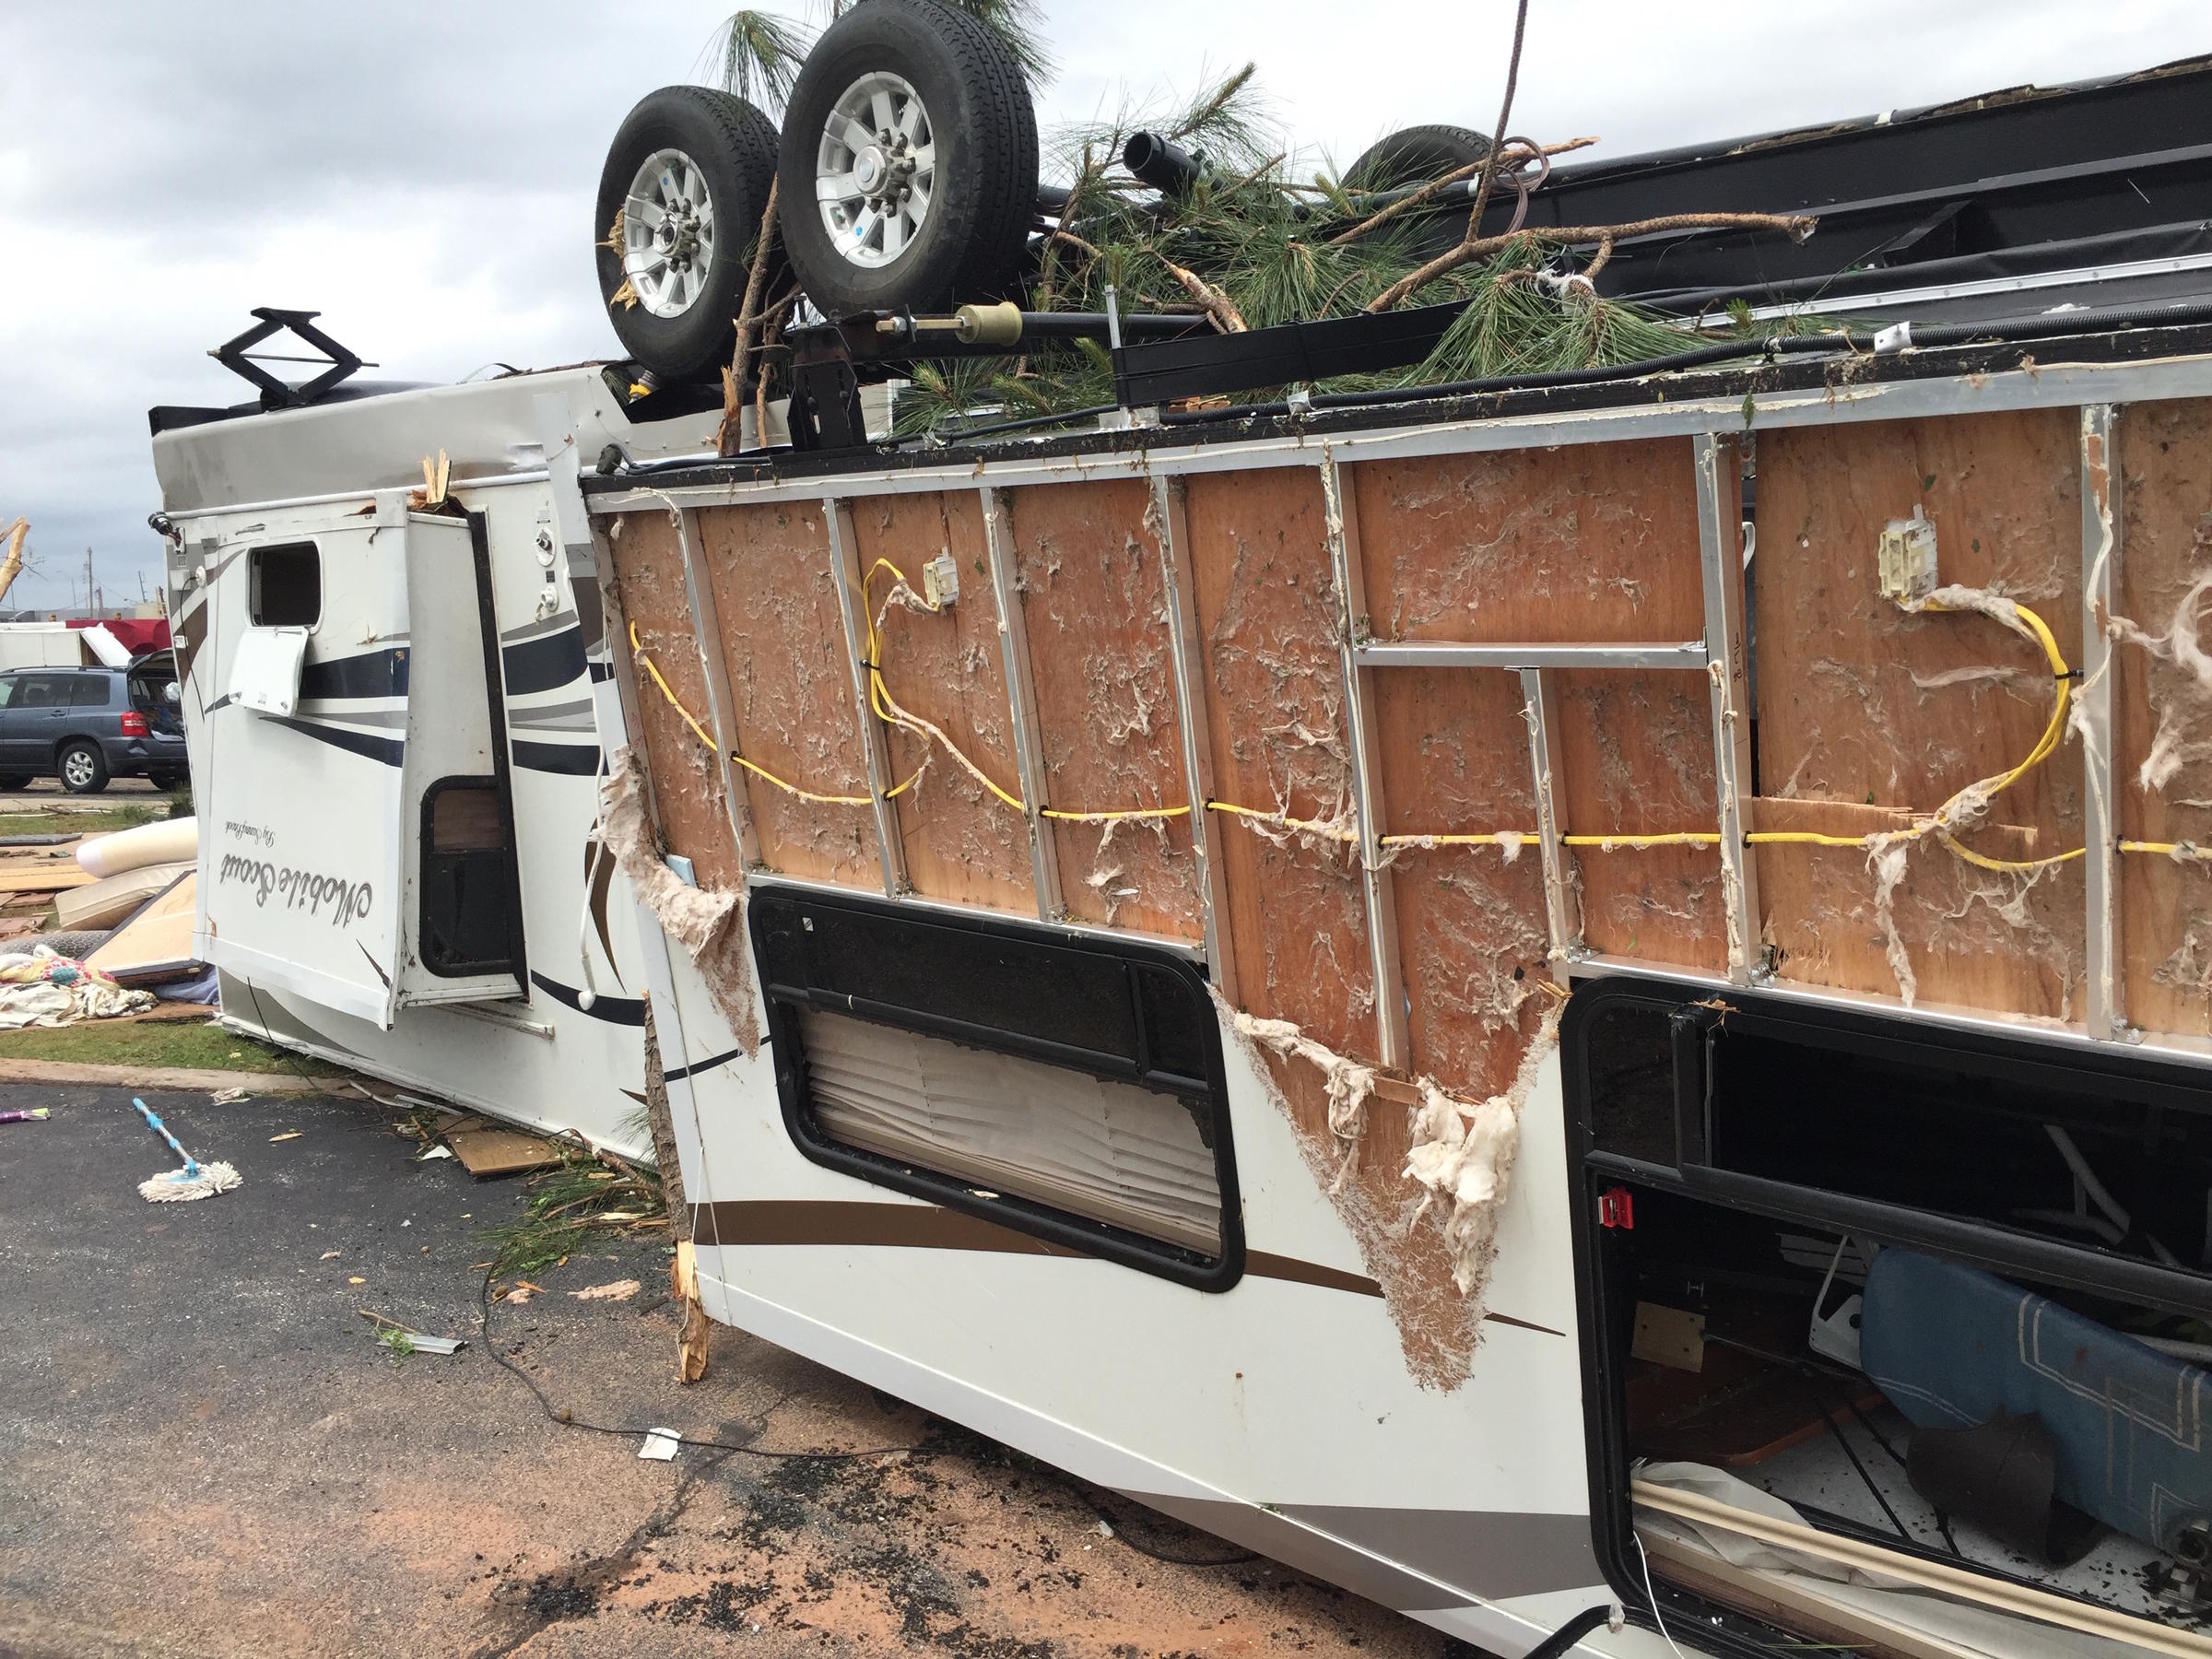 Oklahoma City Residents Recover After Severe Storms Sweep